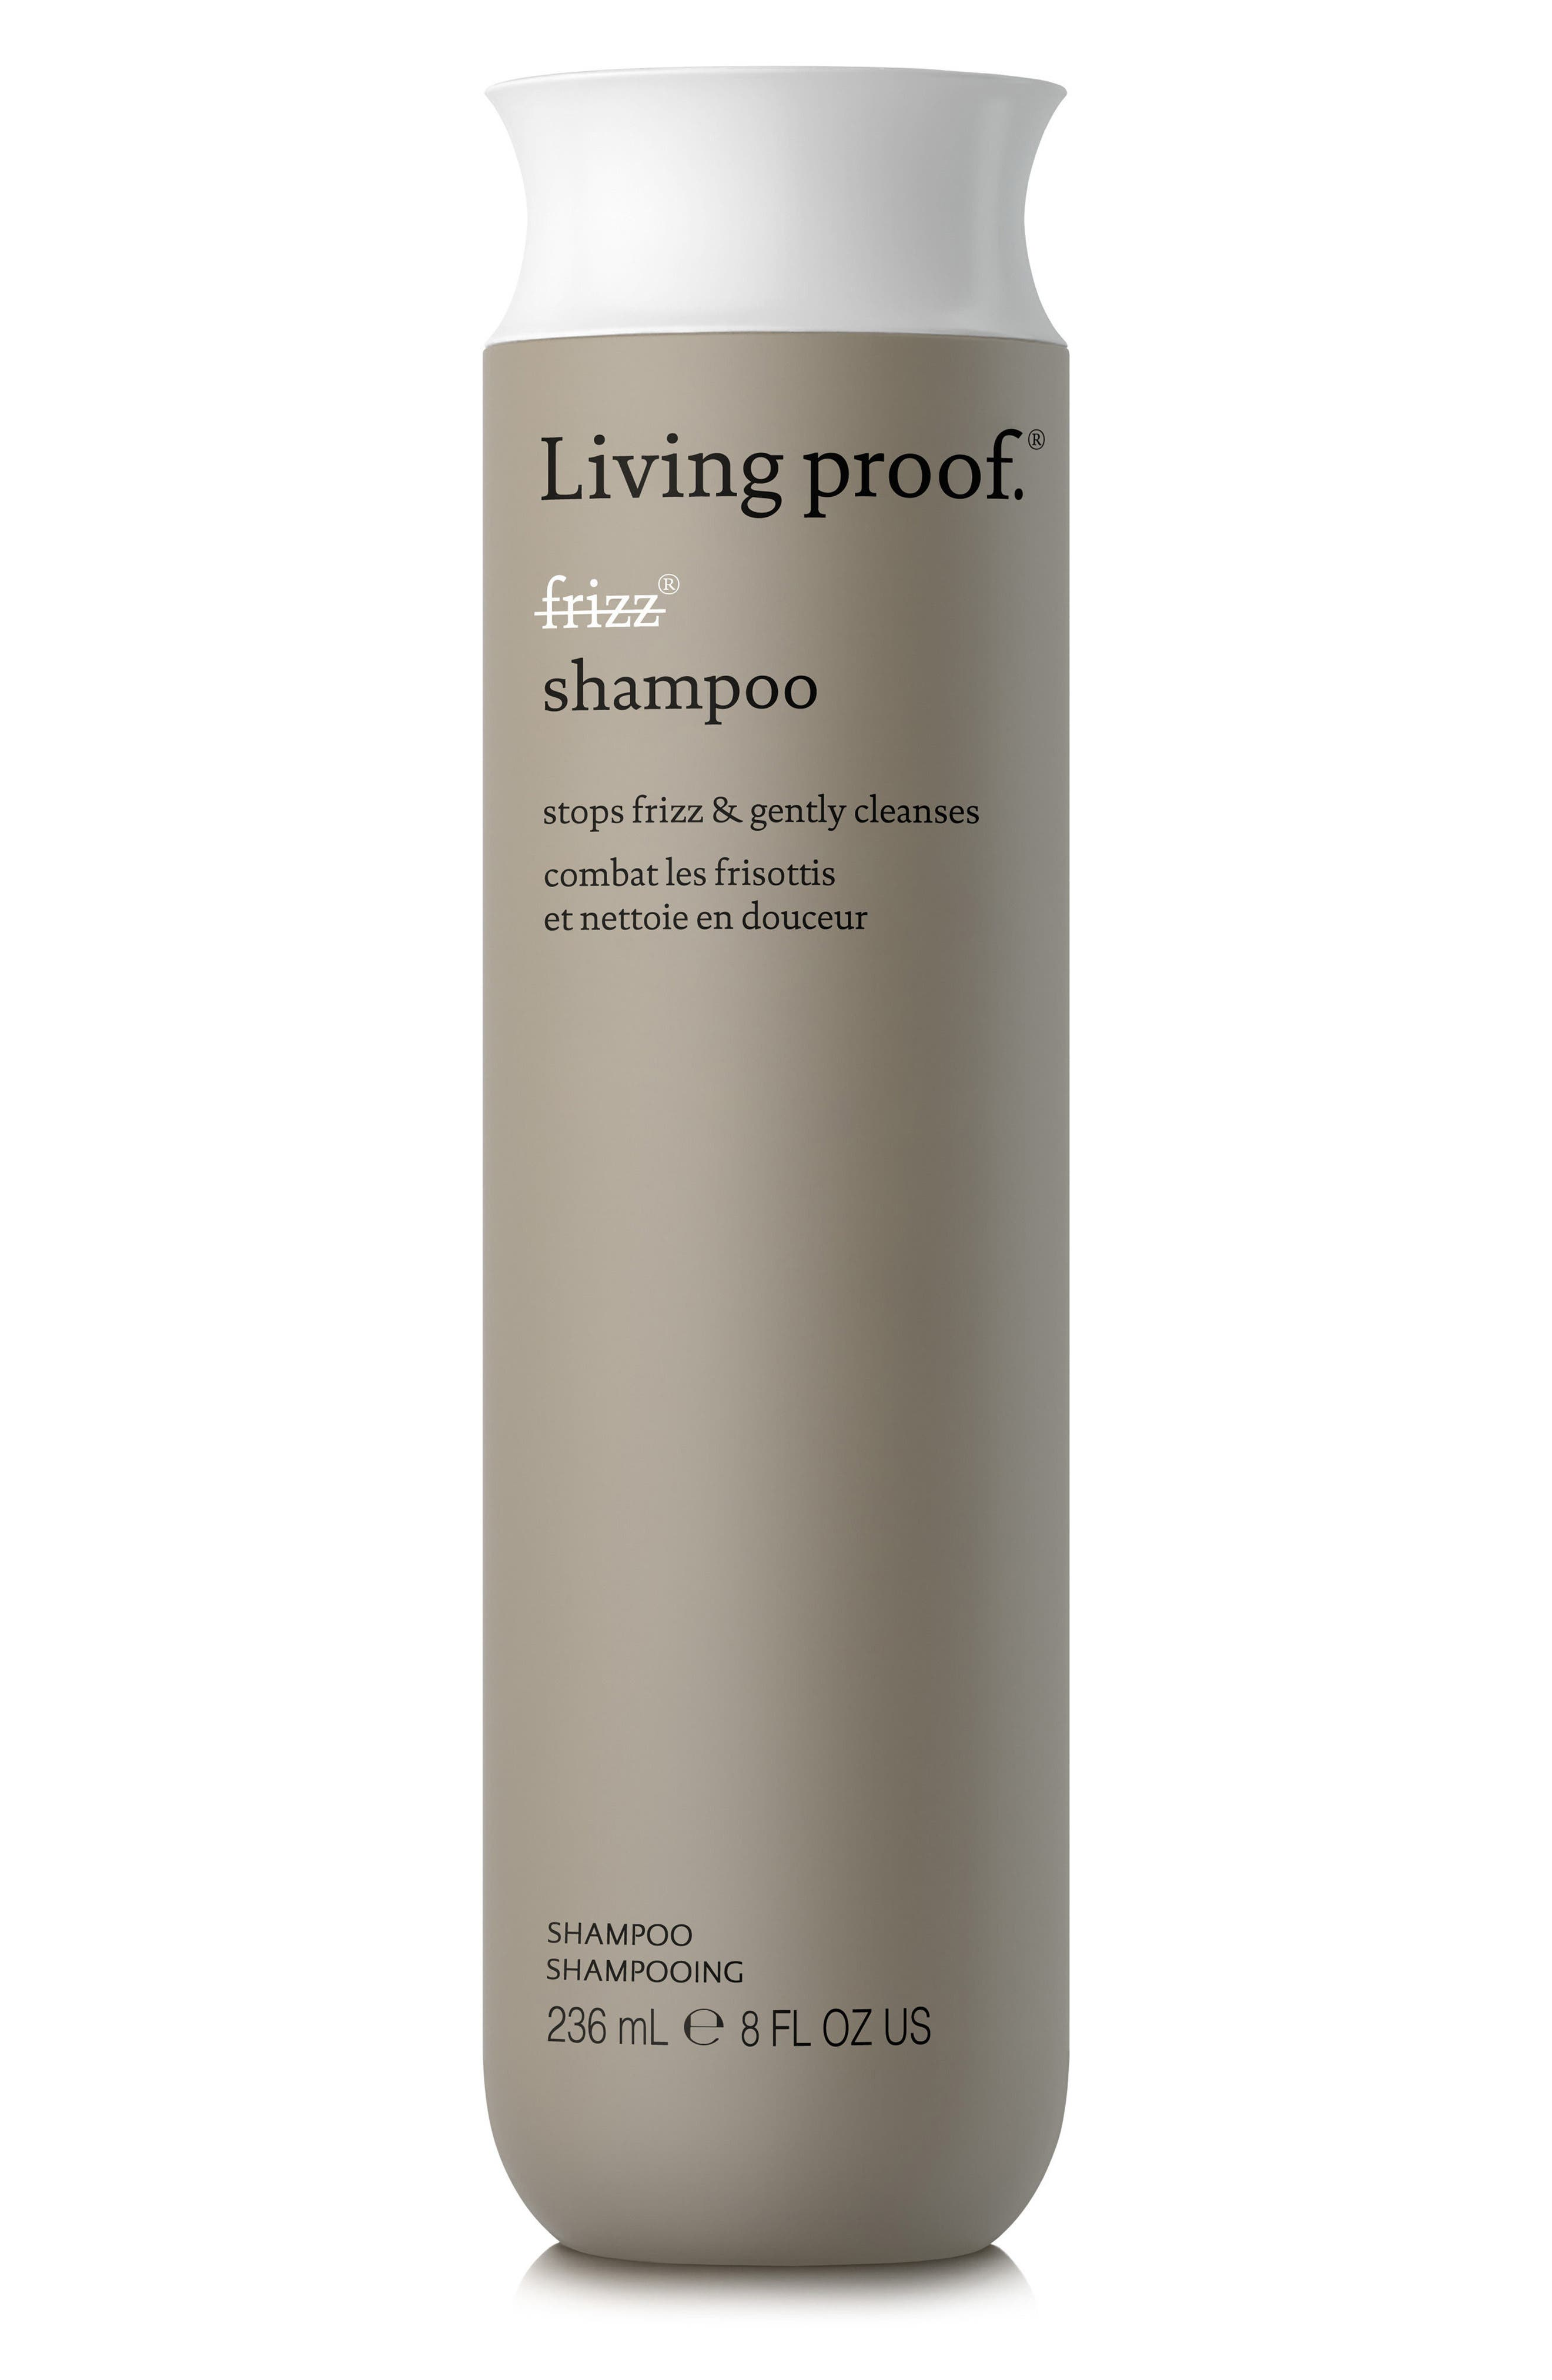 Alternate Image 1 Selected - Living proof® No Frizz Shampoo